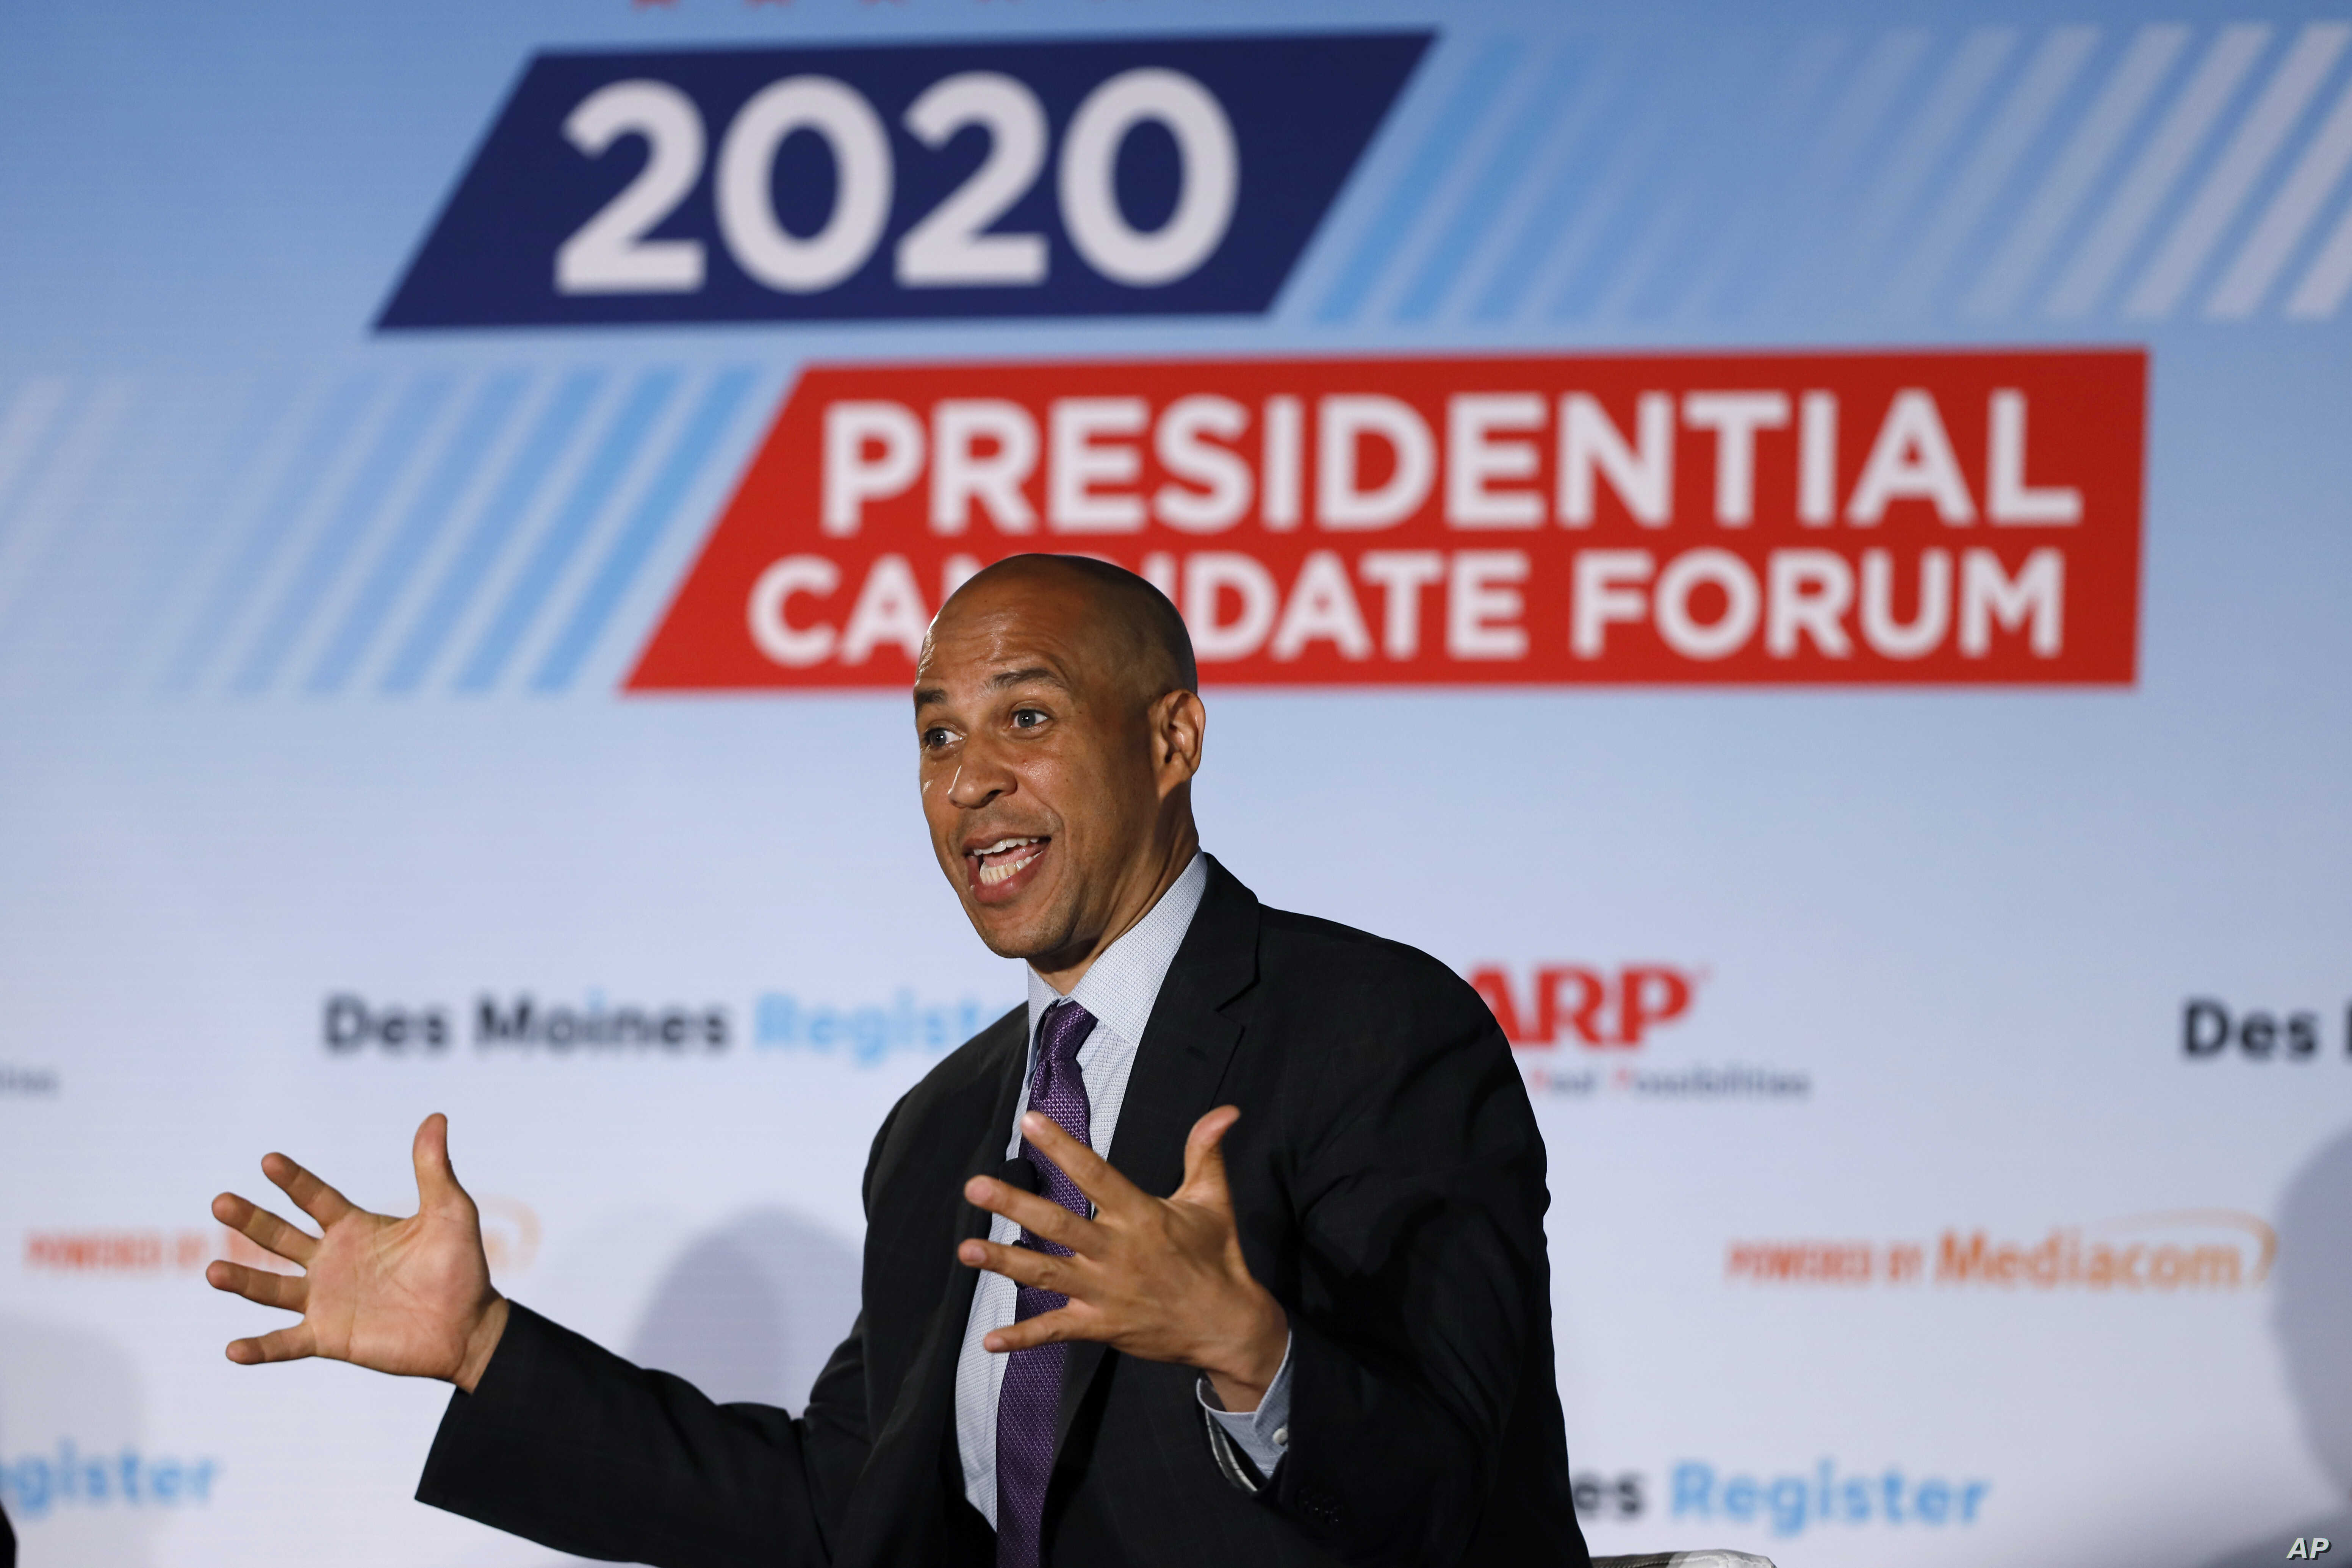 FILE - Democratic presidential candidate Sen. Cory Booker speaks during a presidential candidates forum sponsored by AARP and The Des Moines Register in Des Moines, Iowa, July 15, 2019.